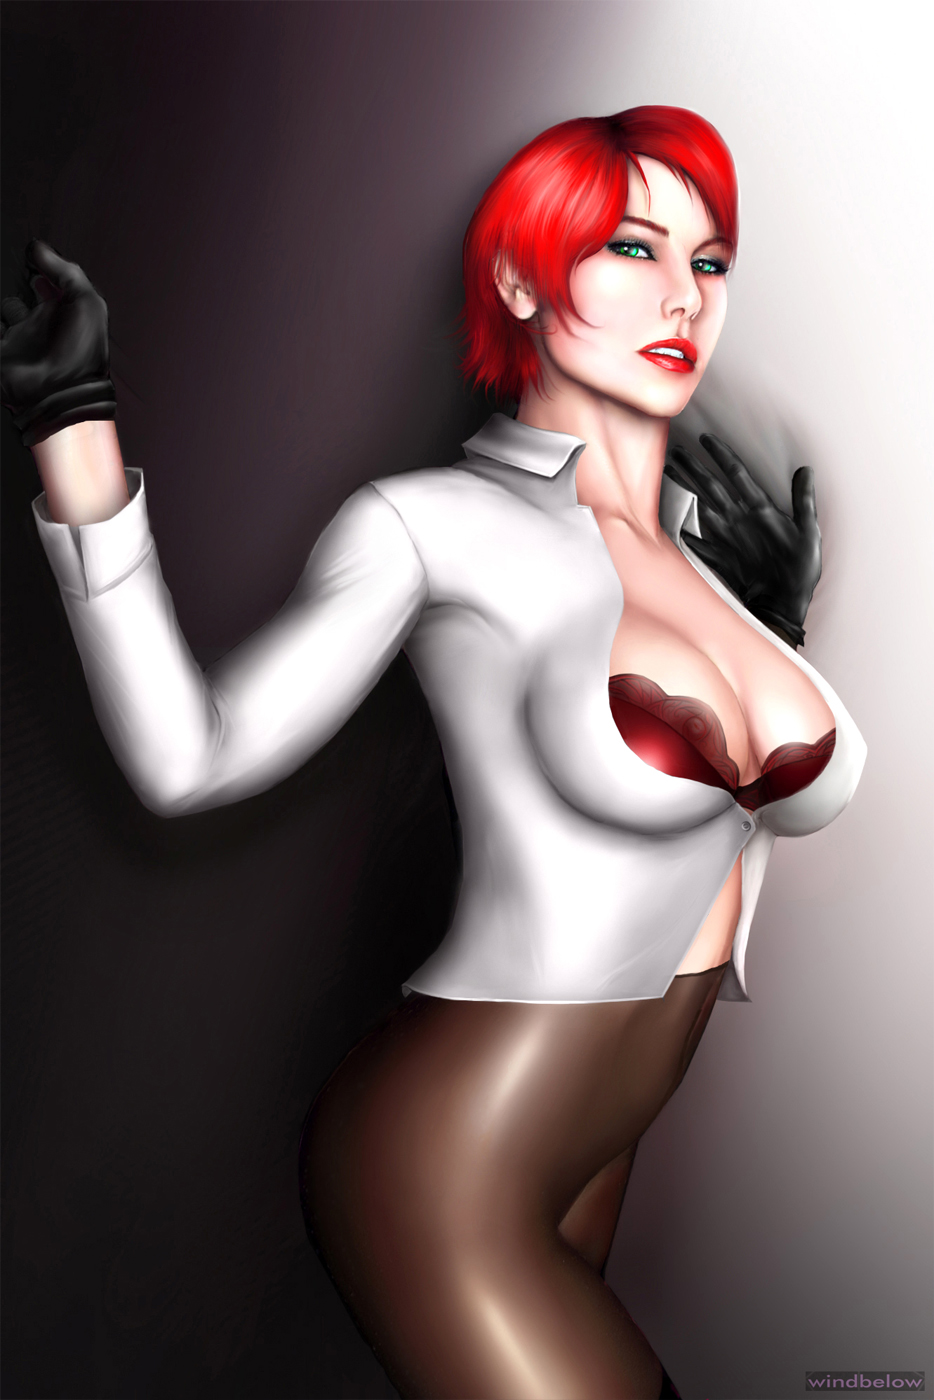 bra cleavage gloves king_of_fighters red_hair vanessa windbelow_(artist)